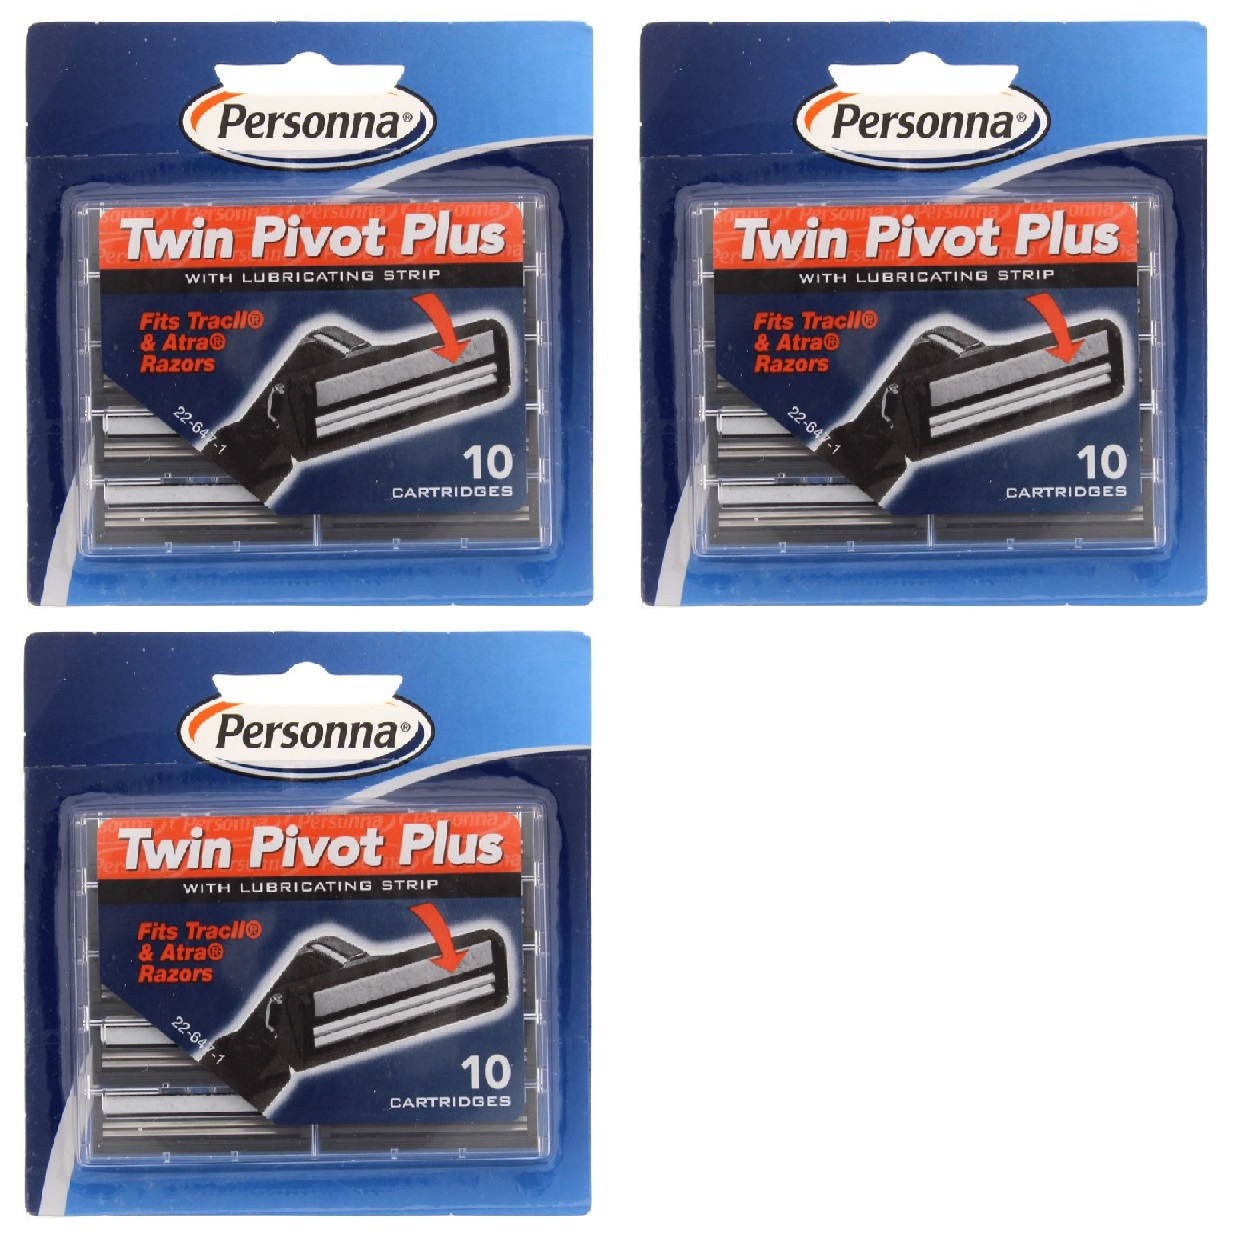 Personna Twin Pivot Plus Refill Blade Cartridges w/ Lubricating Strip for Atra & Trac II Razors 10 ct. (Pack of 3) + Old Spice Deadlock Spiking Glue, Travel Size, .84 Oz